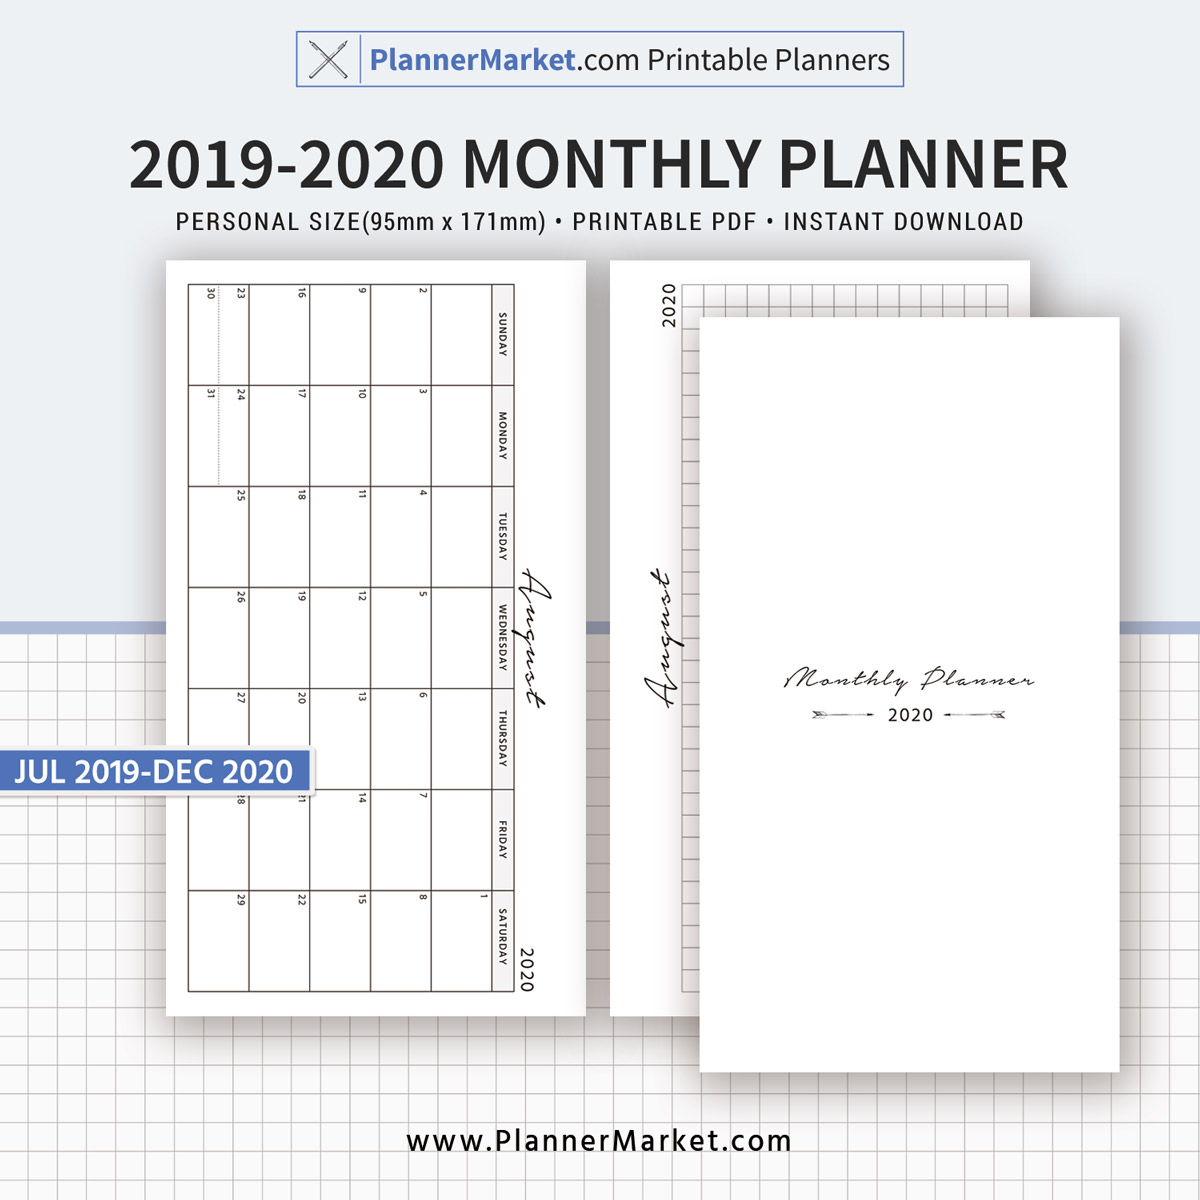 photo regarding Printable Planner referred to as 2019-2020 Every month Planner, 18-Thirty day period Dated Calendar, Every month Routine, Particular person Dimensions, Planner Inserts, Refills, Printable Planner